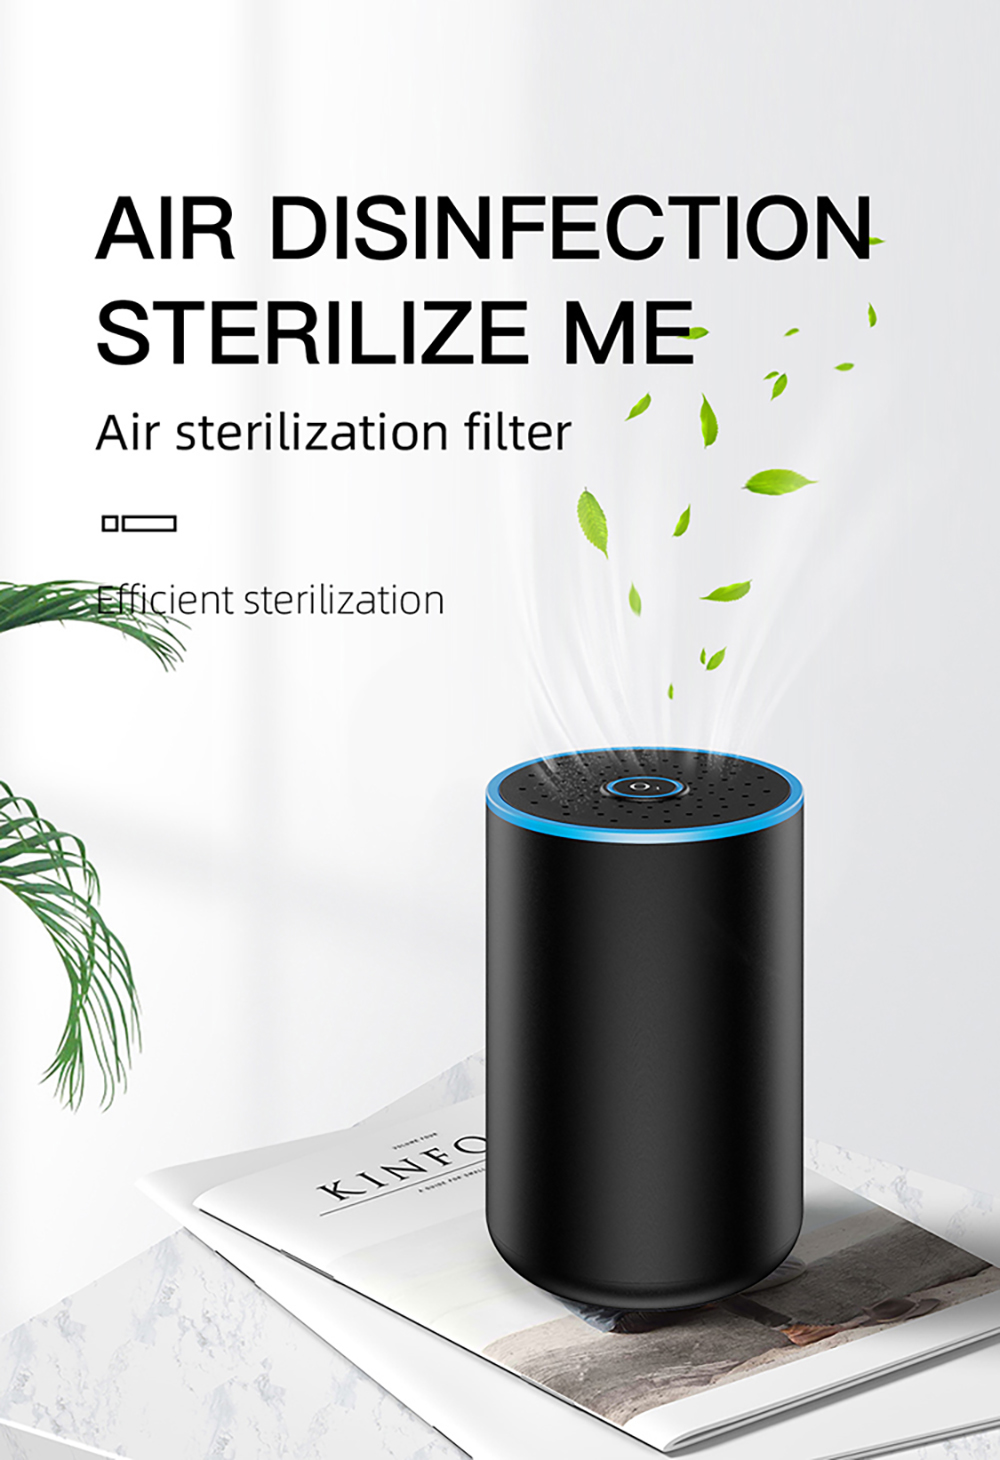 Q4 Car Air Purifier Disinfection Device Sterilization Filter for Cars and Indoor - Black